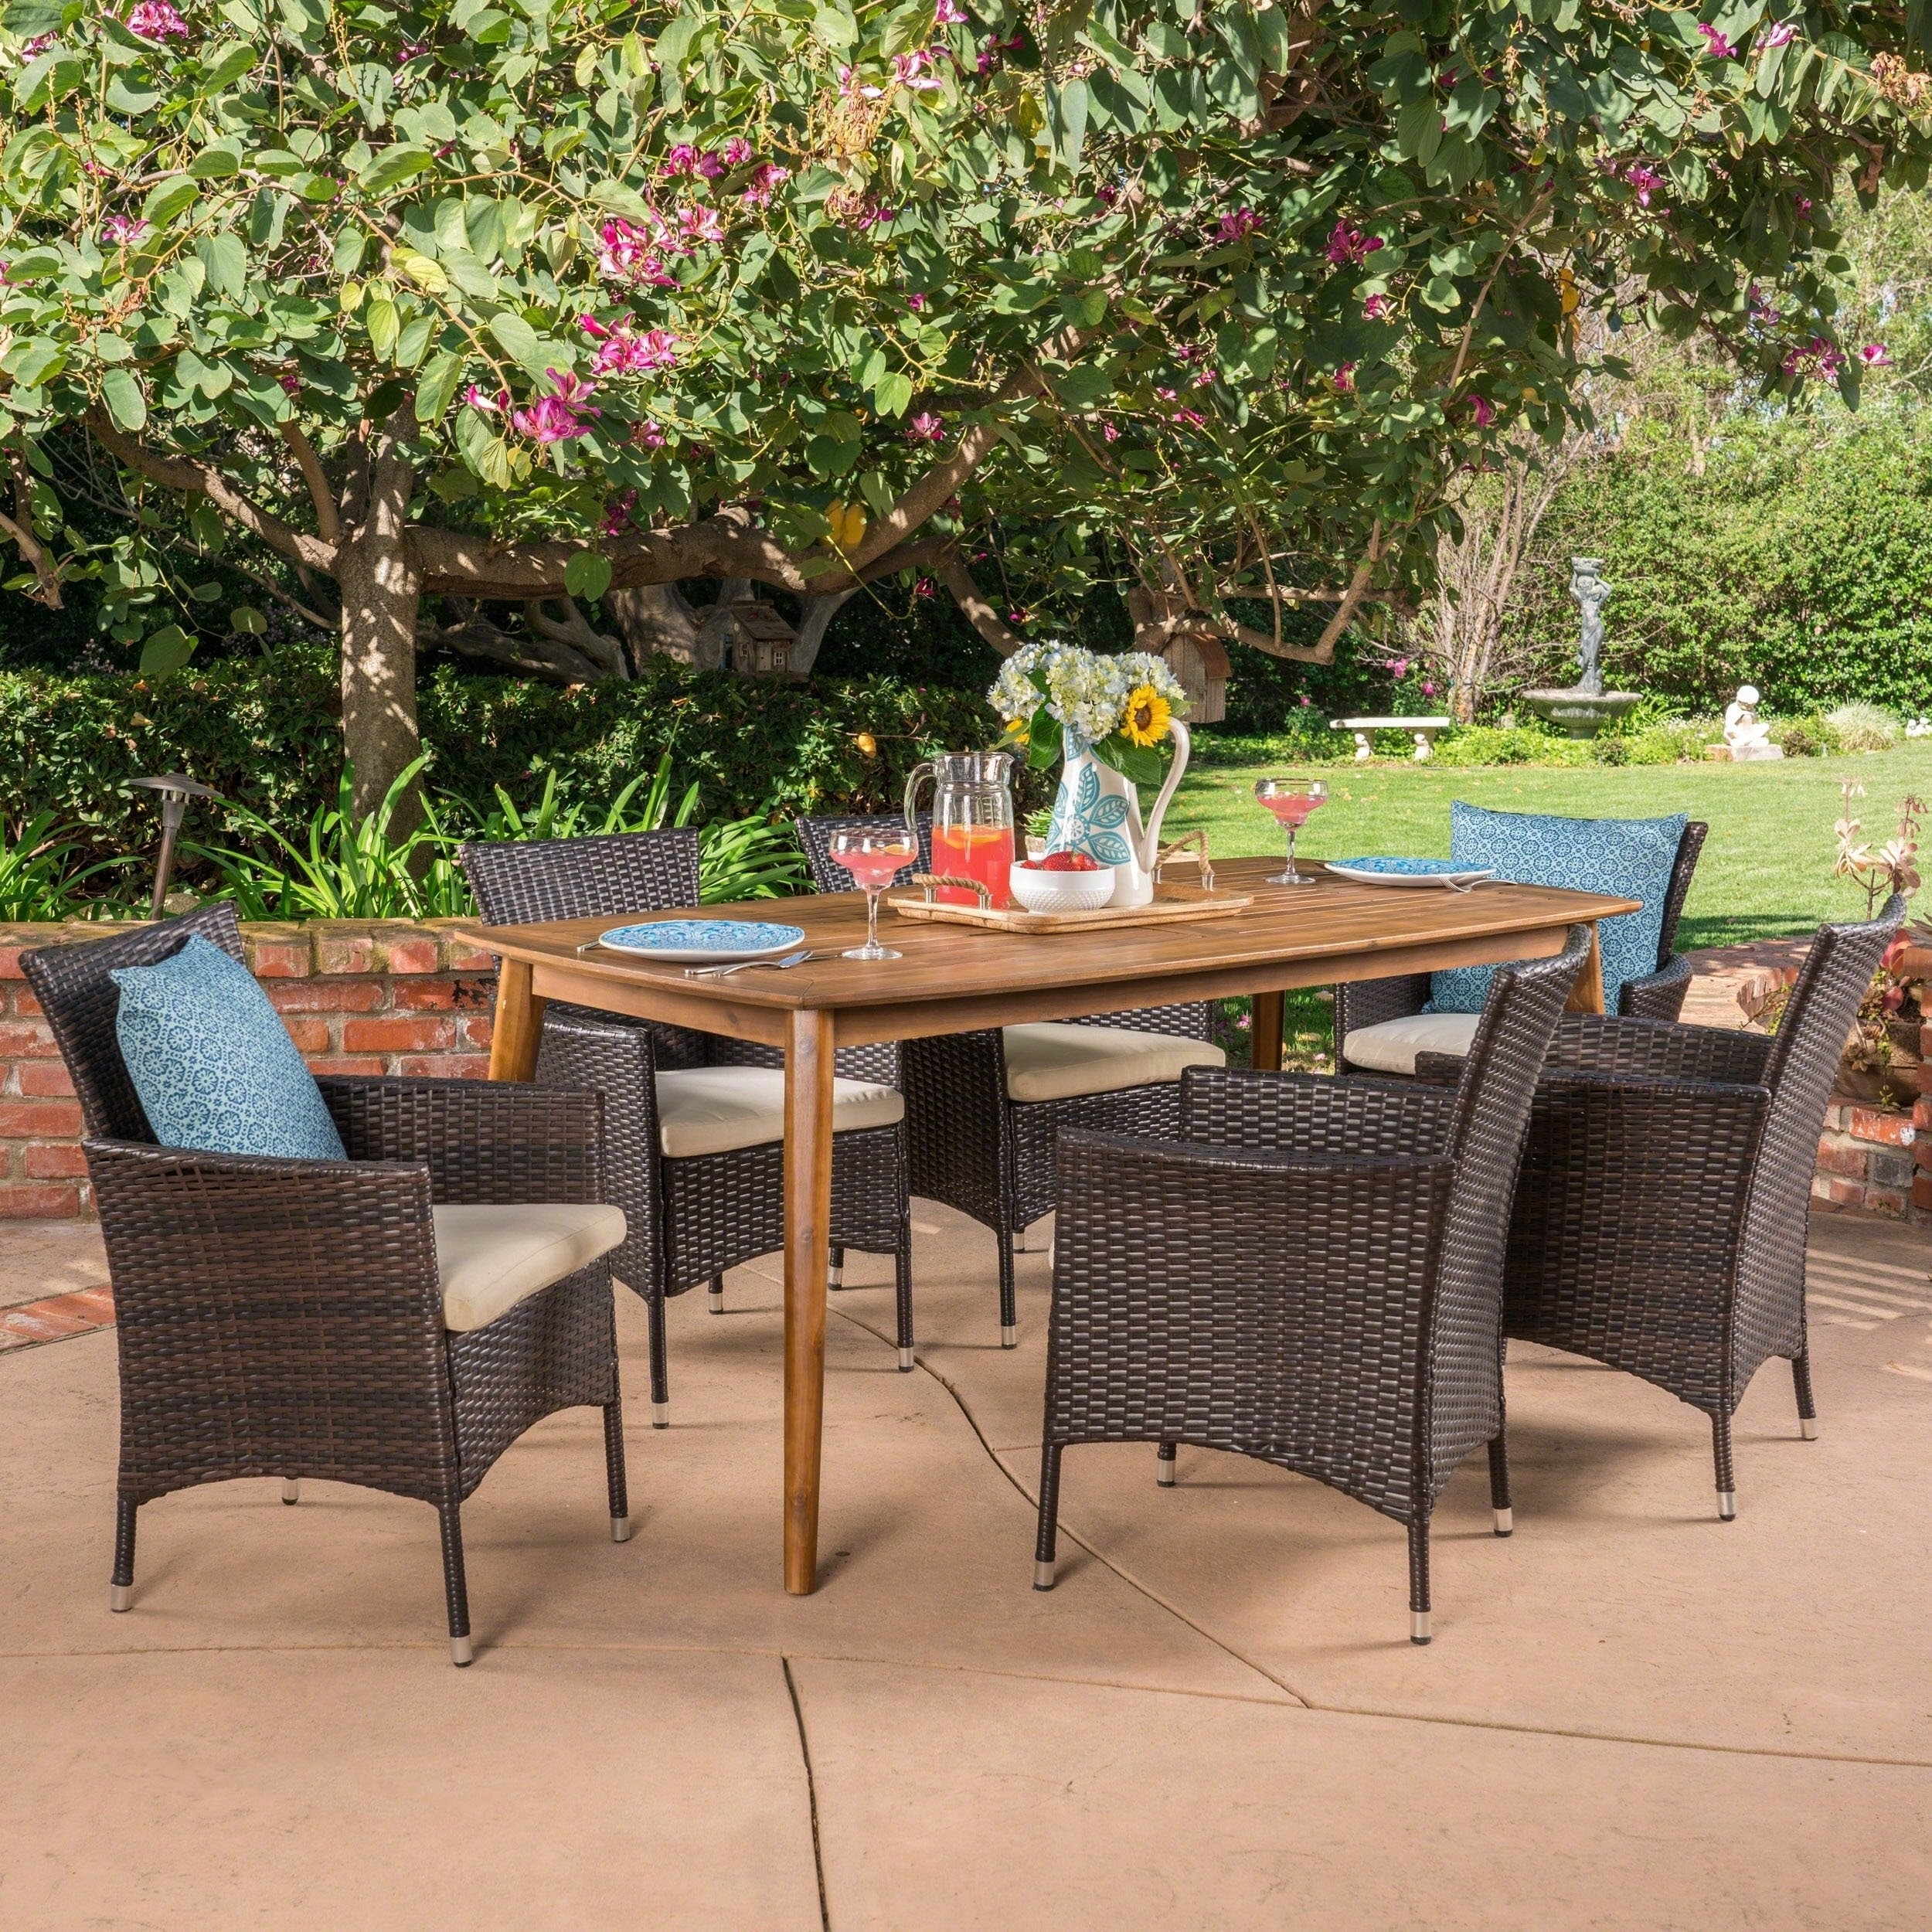 Shop Jaxon Outdoor 7 Piece Multibrown Pe Wicker Dining Set With In Best And Newest Jaxon Grey 7 Piece Rectangle Extension Dining Sets With Wood Chairs (Image 18 of 20)